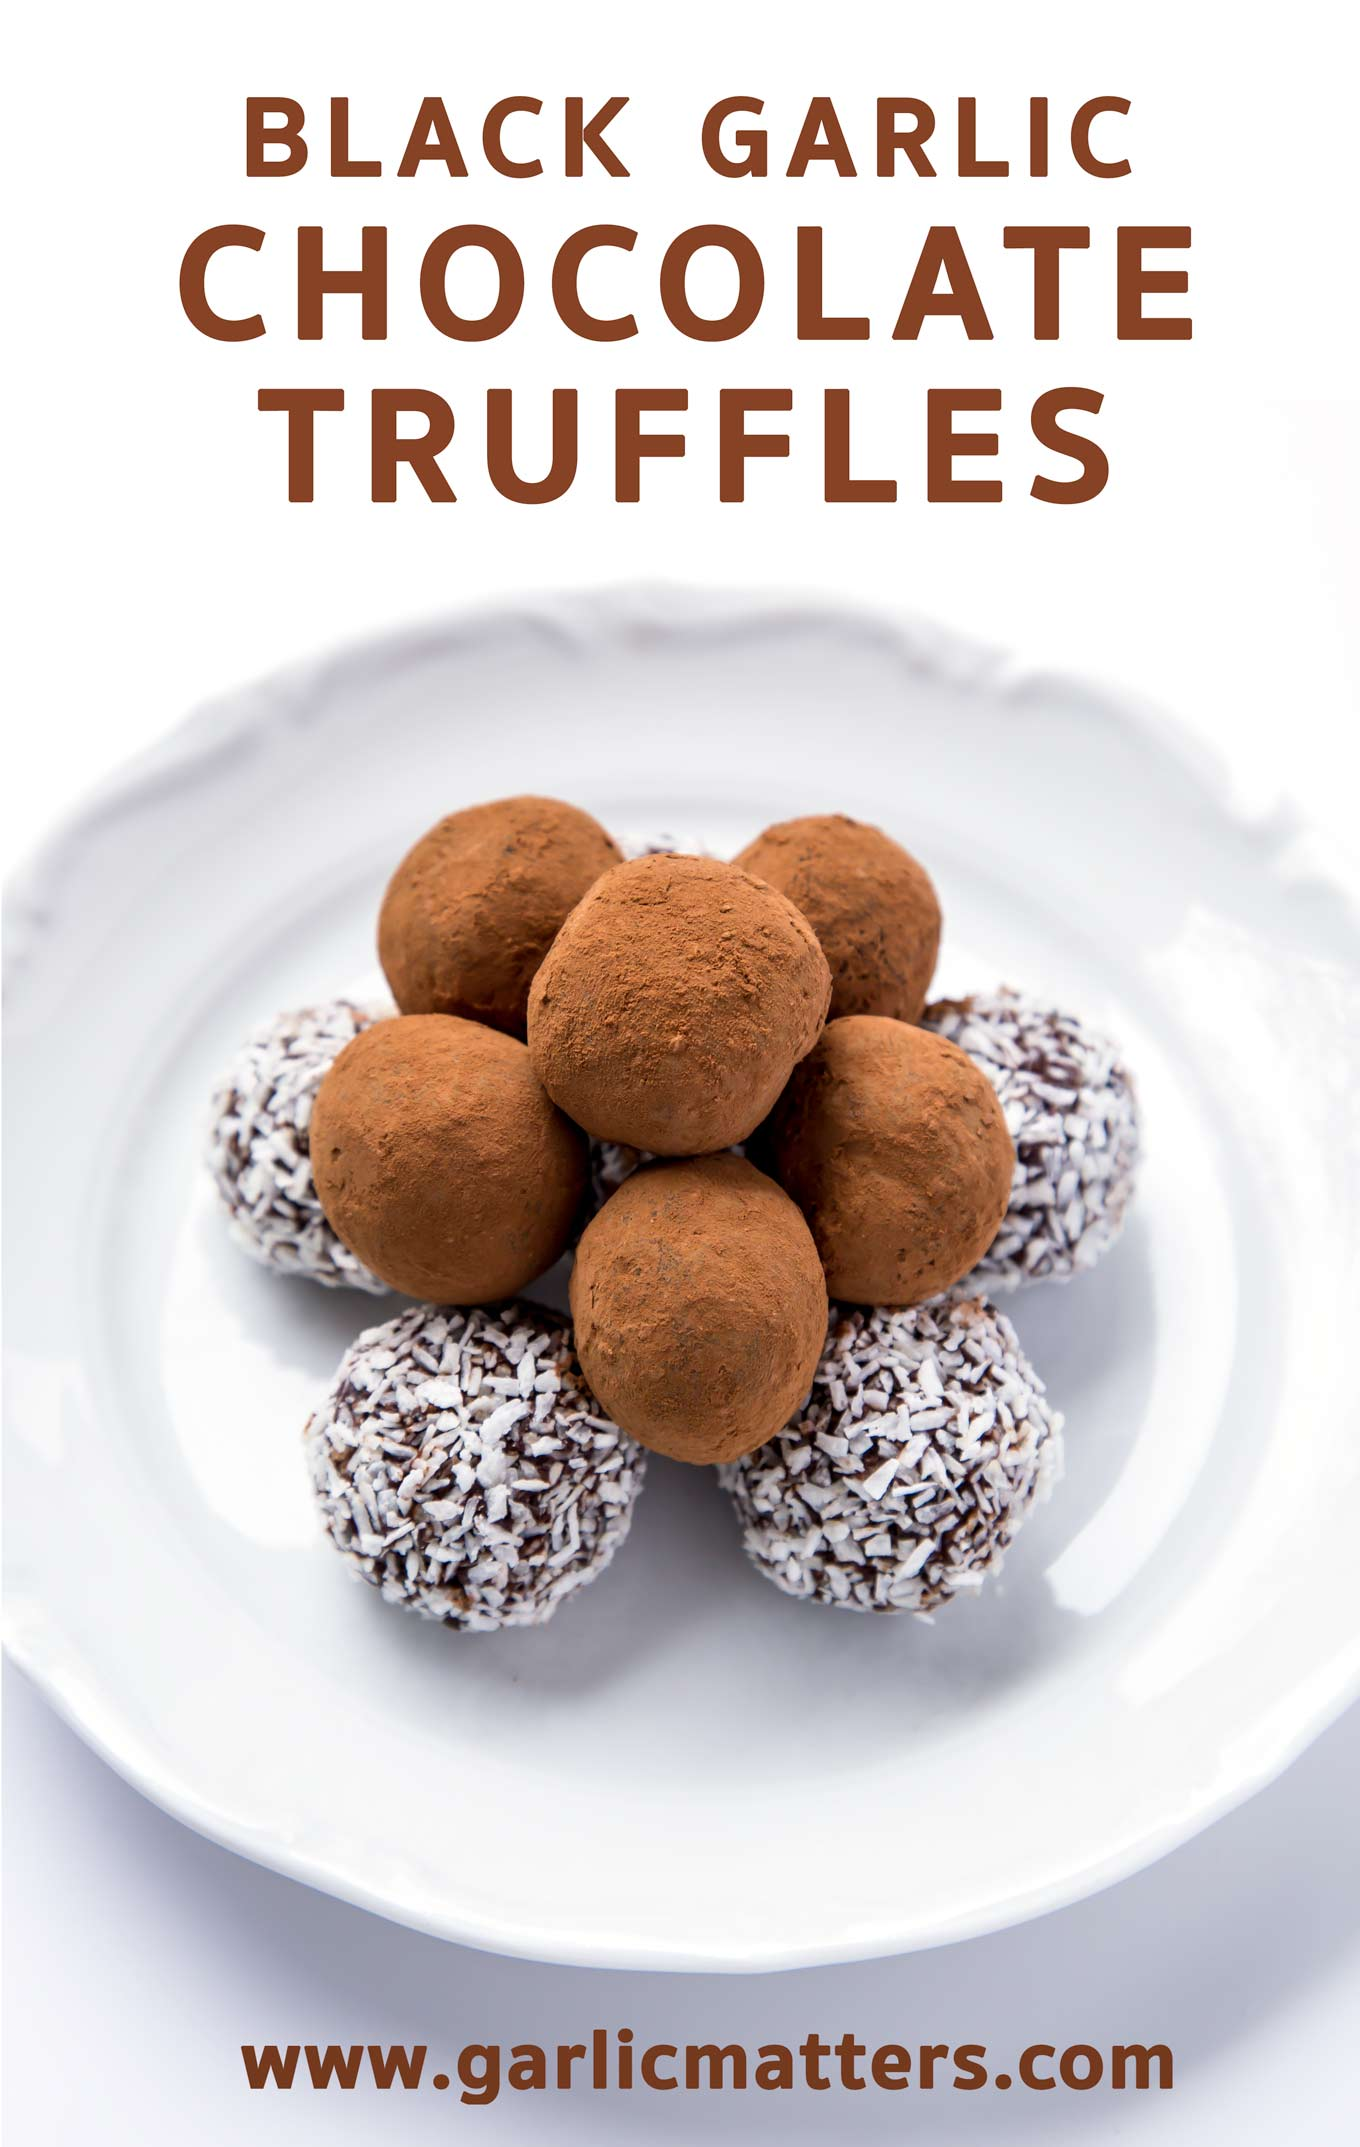 Black garlic chocolate truffles recipe is the most delicious combination - a must try for any chocolate lover!